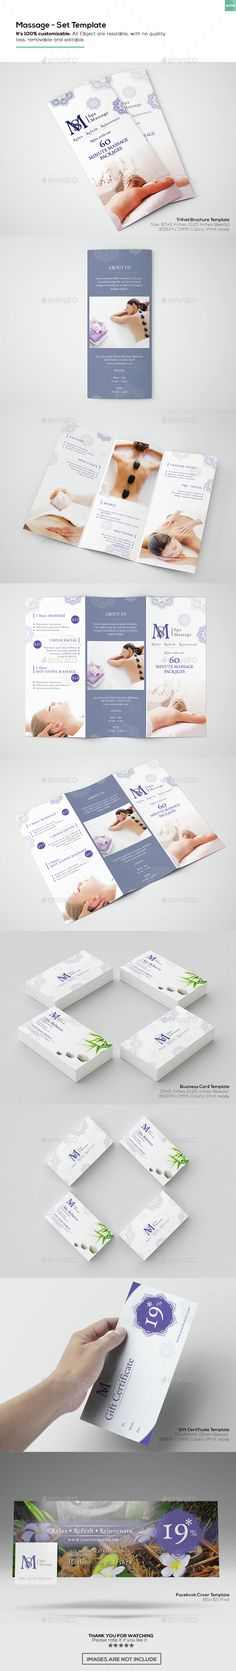 Spa Marketing Postcard  Flyer Vol  Spa Massage Business And